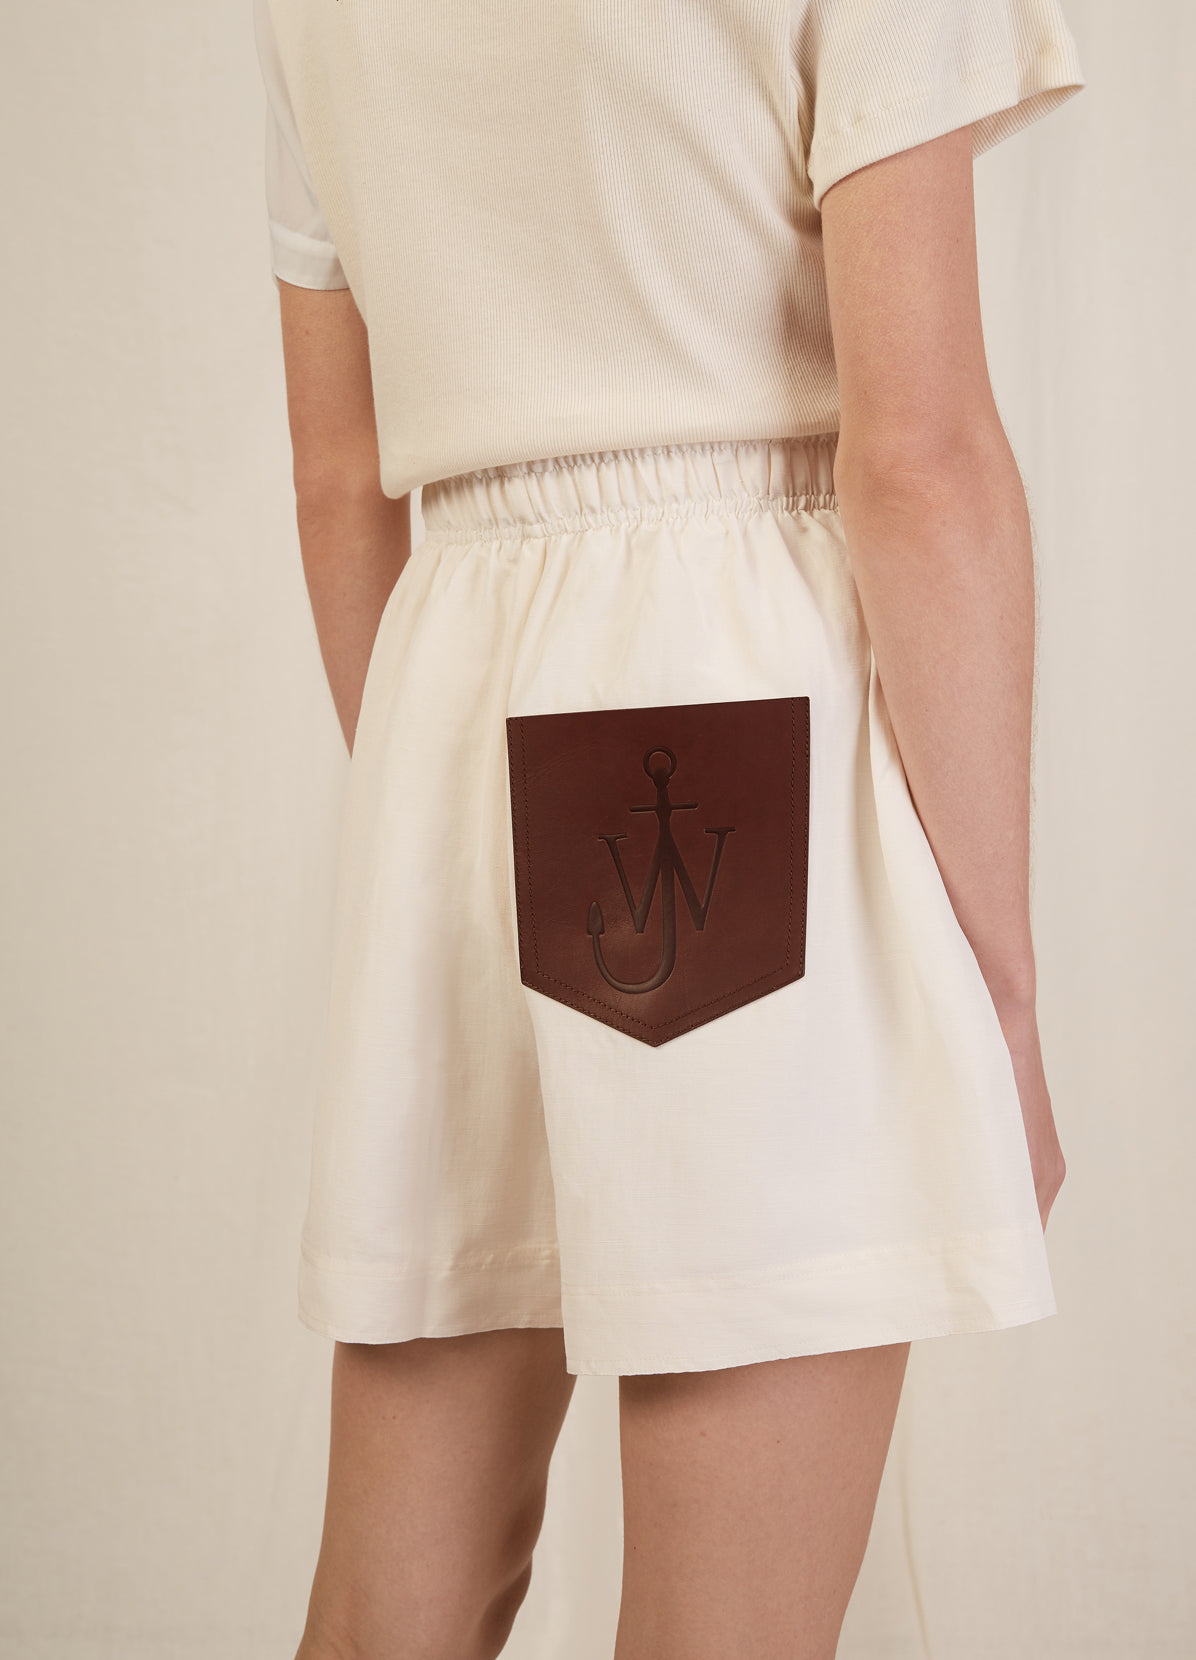 BOXER SHORTS WITH LEATHER POCKET DETAIL